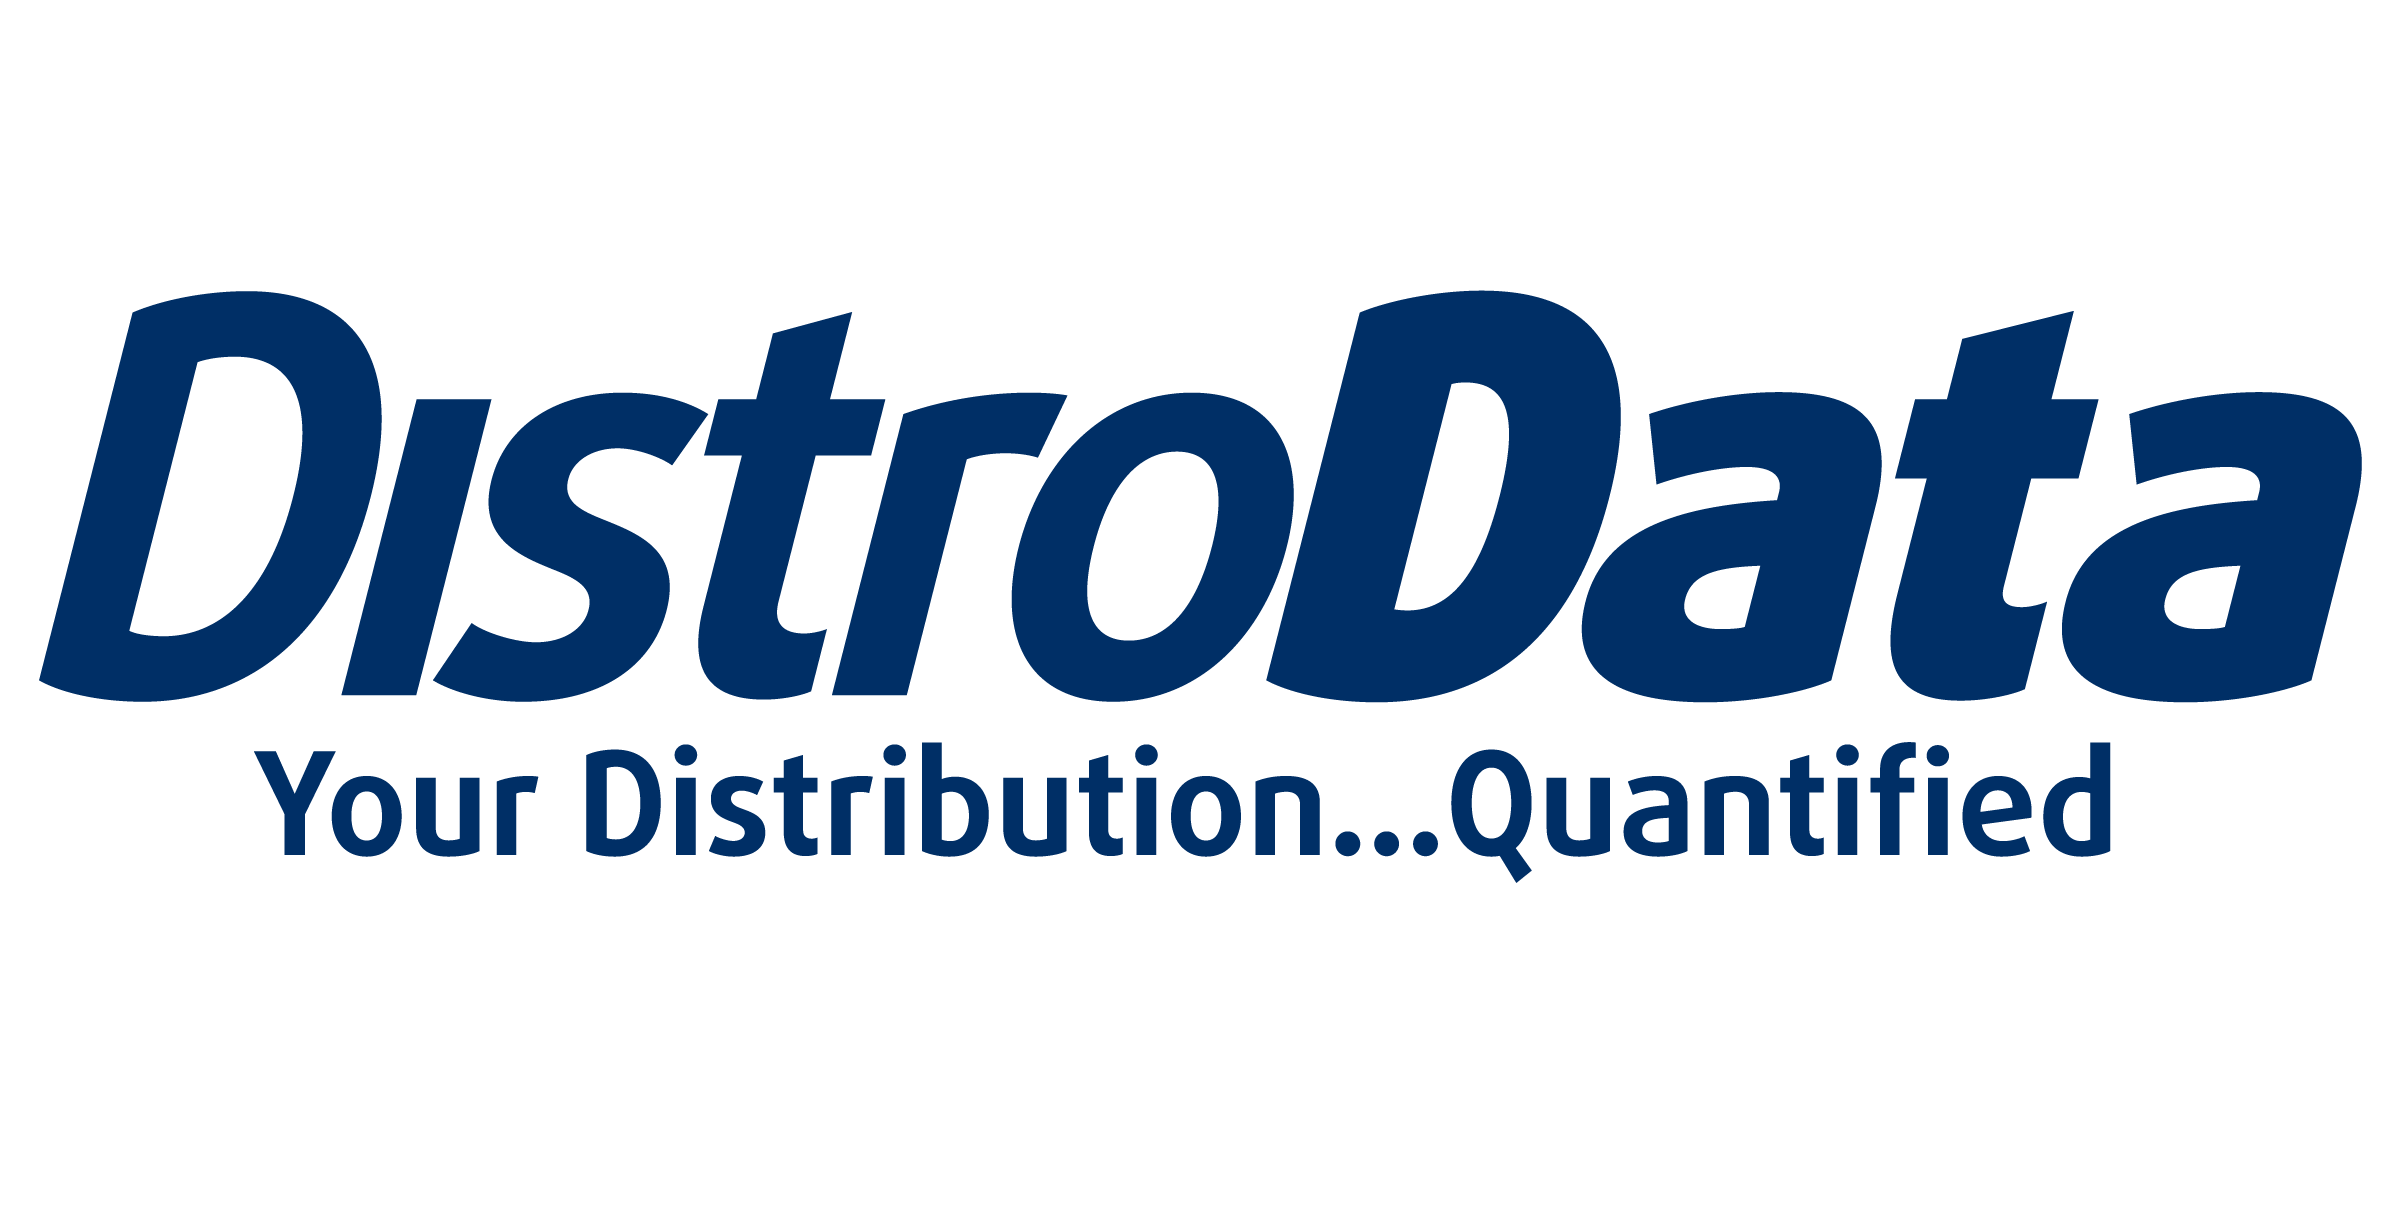 Your distribution …Quantified!